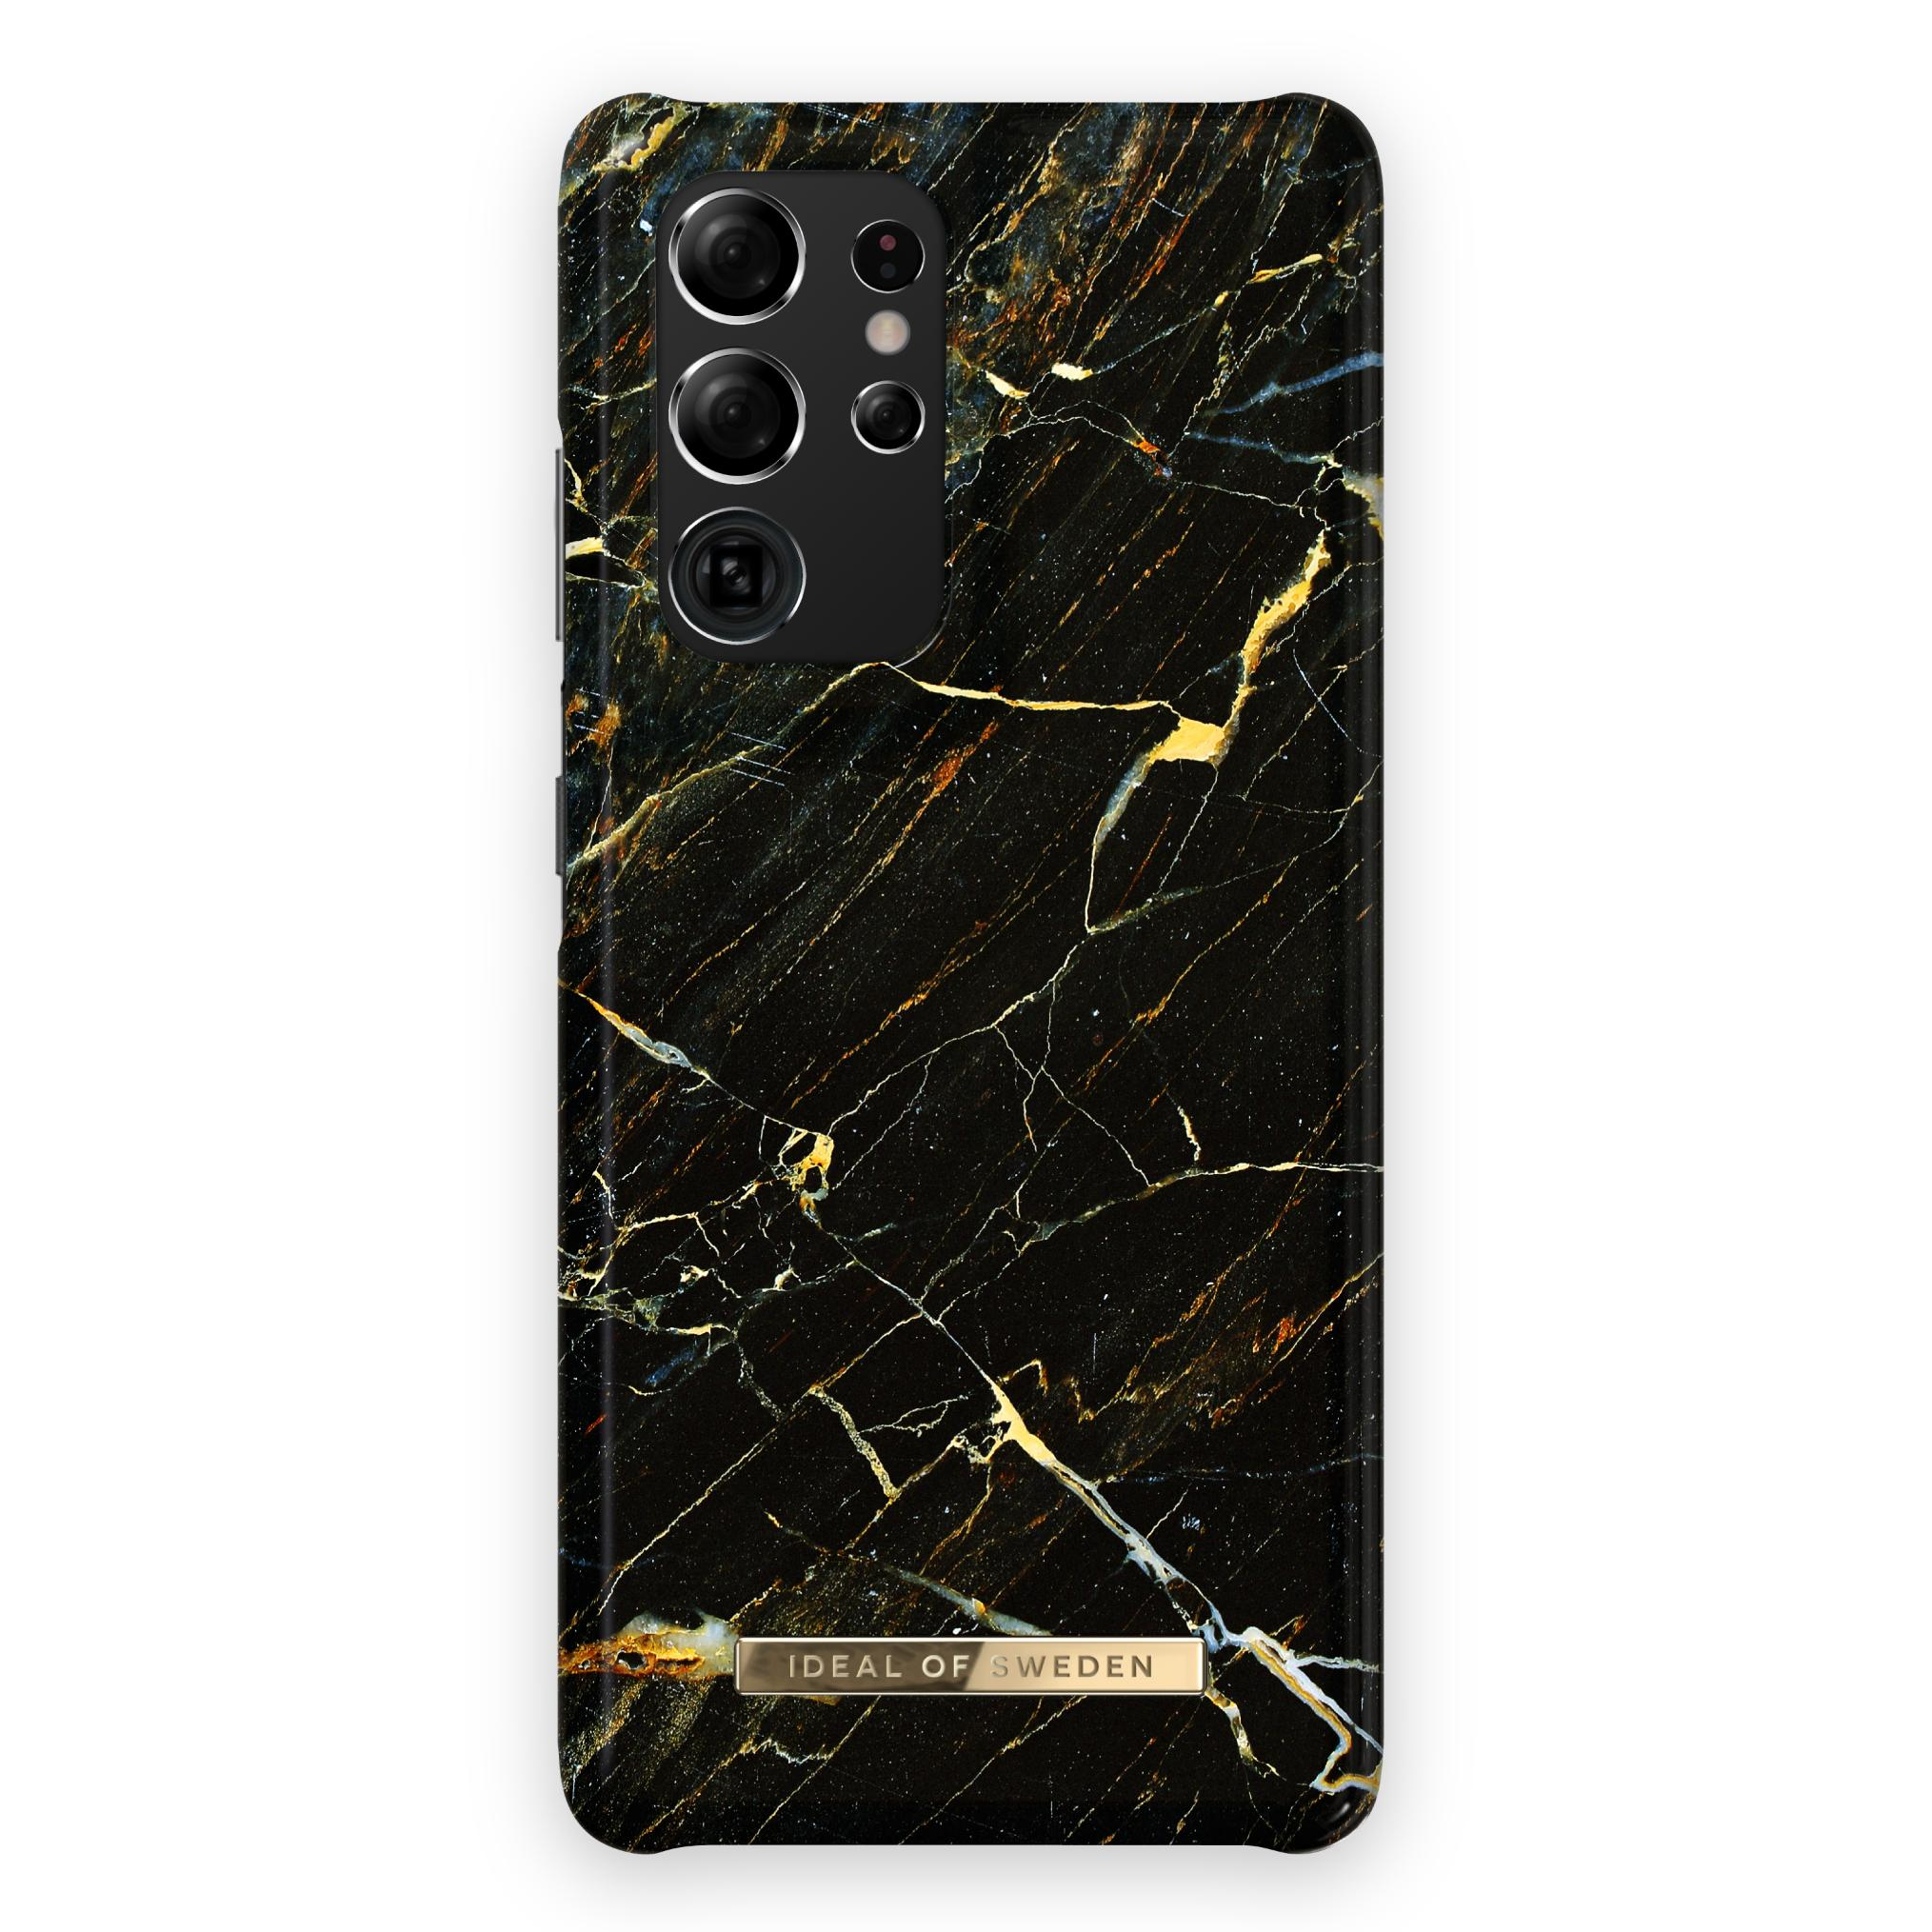 Fashion Case Galaxy S21 Ultra Port Laurent Marble